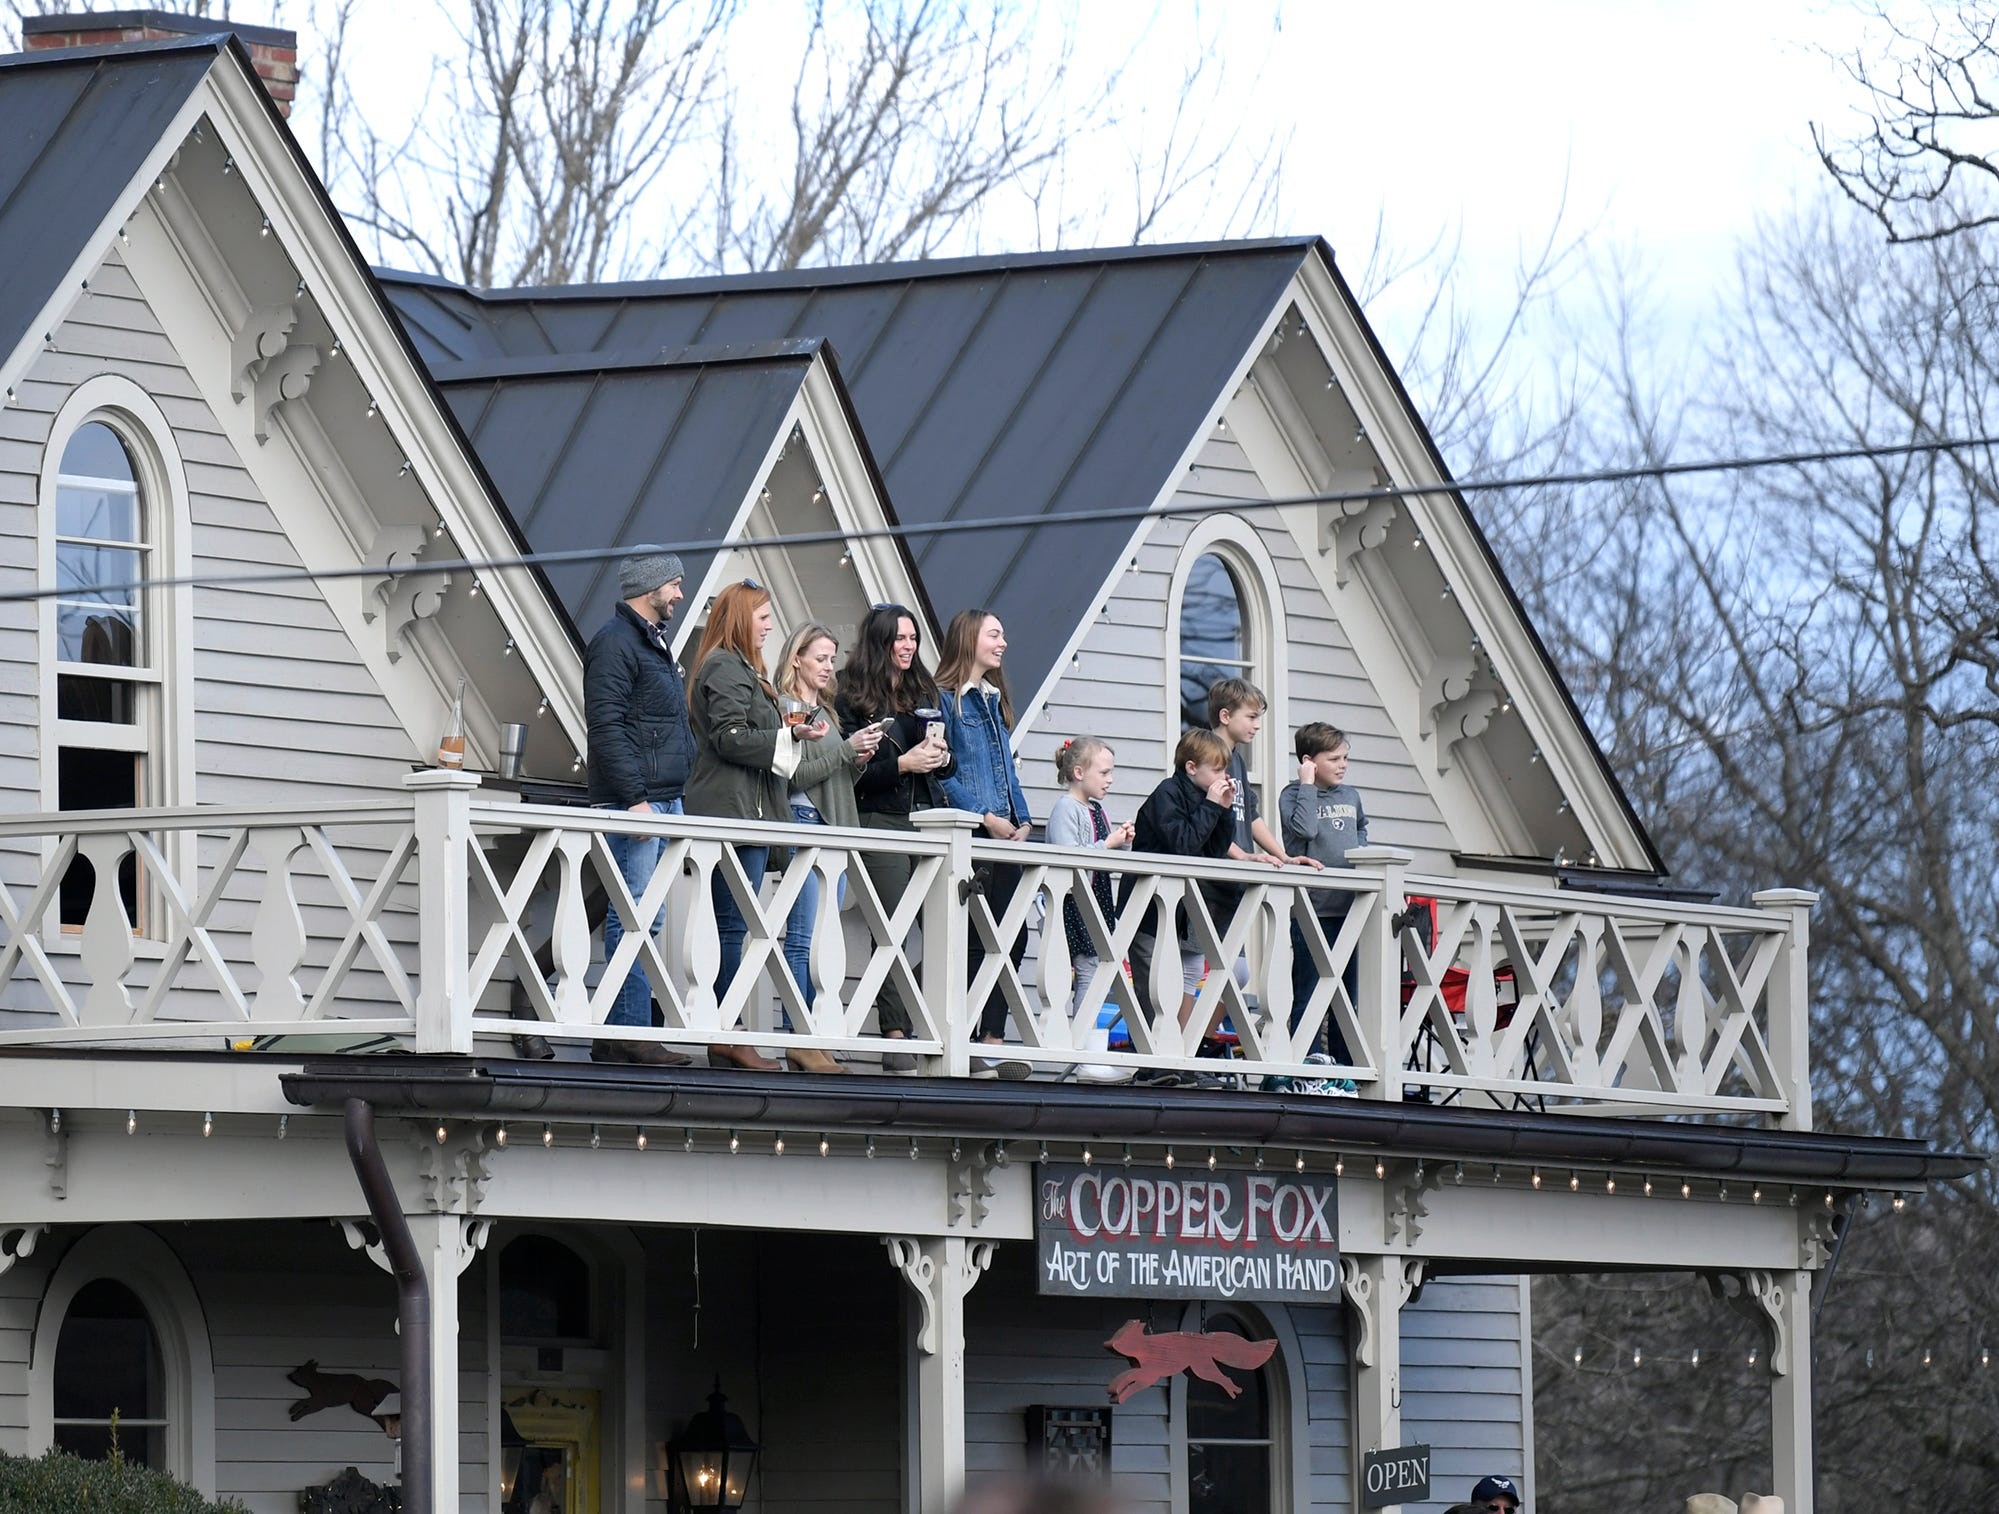 People watch the Leiper's Fork Christmas Parade from a balony on Saturday, Dec. 15, 2018.